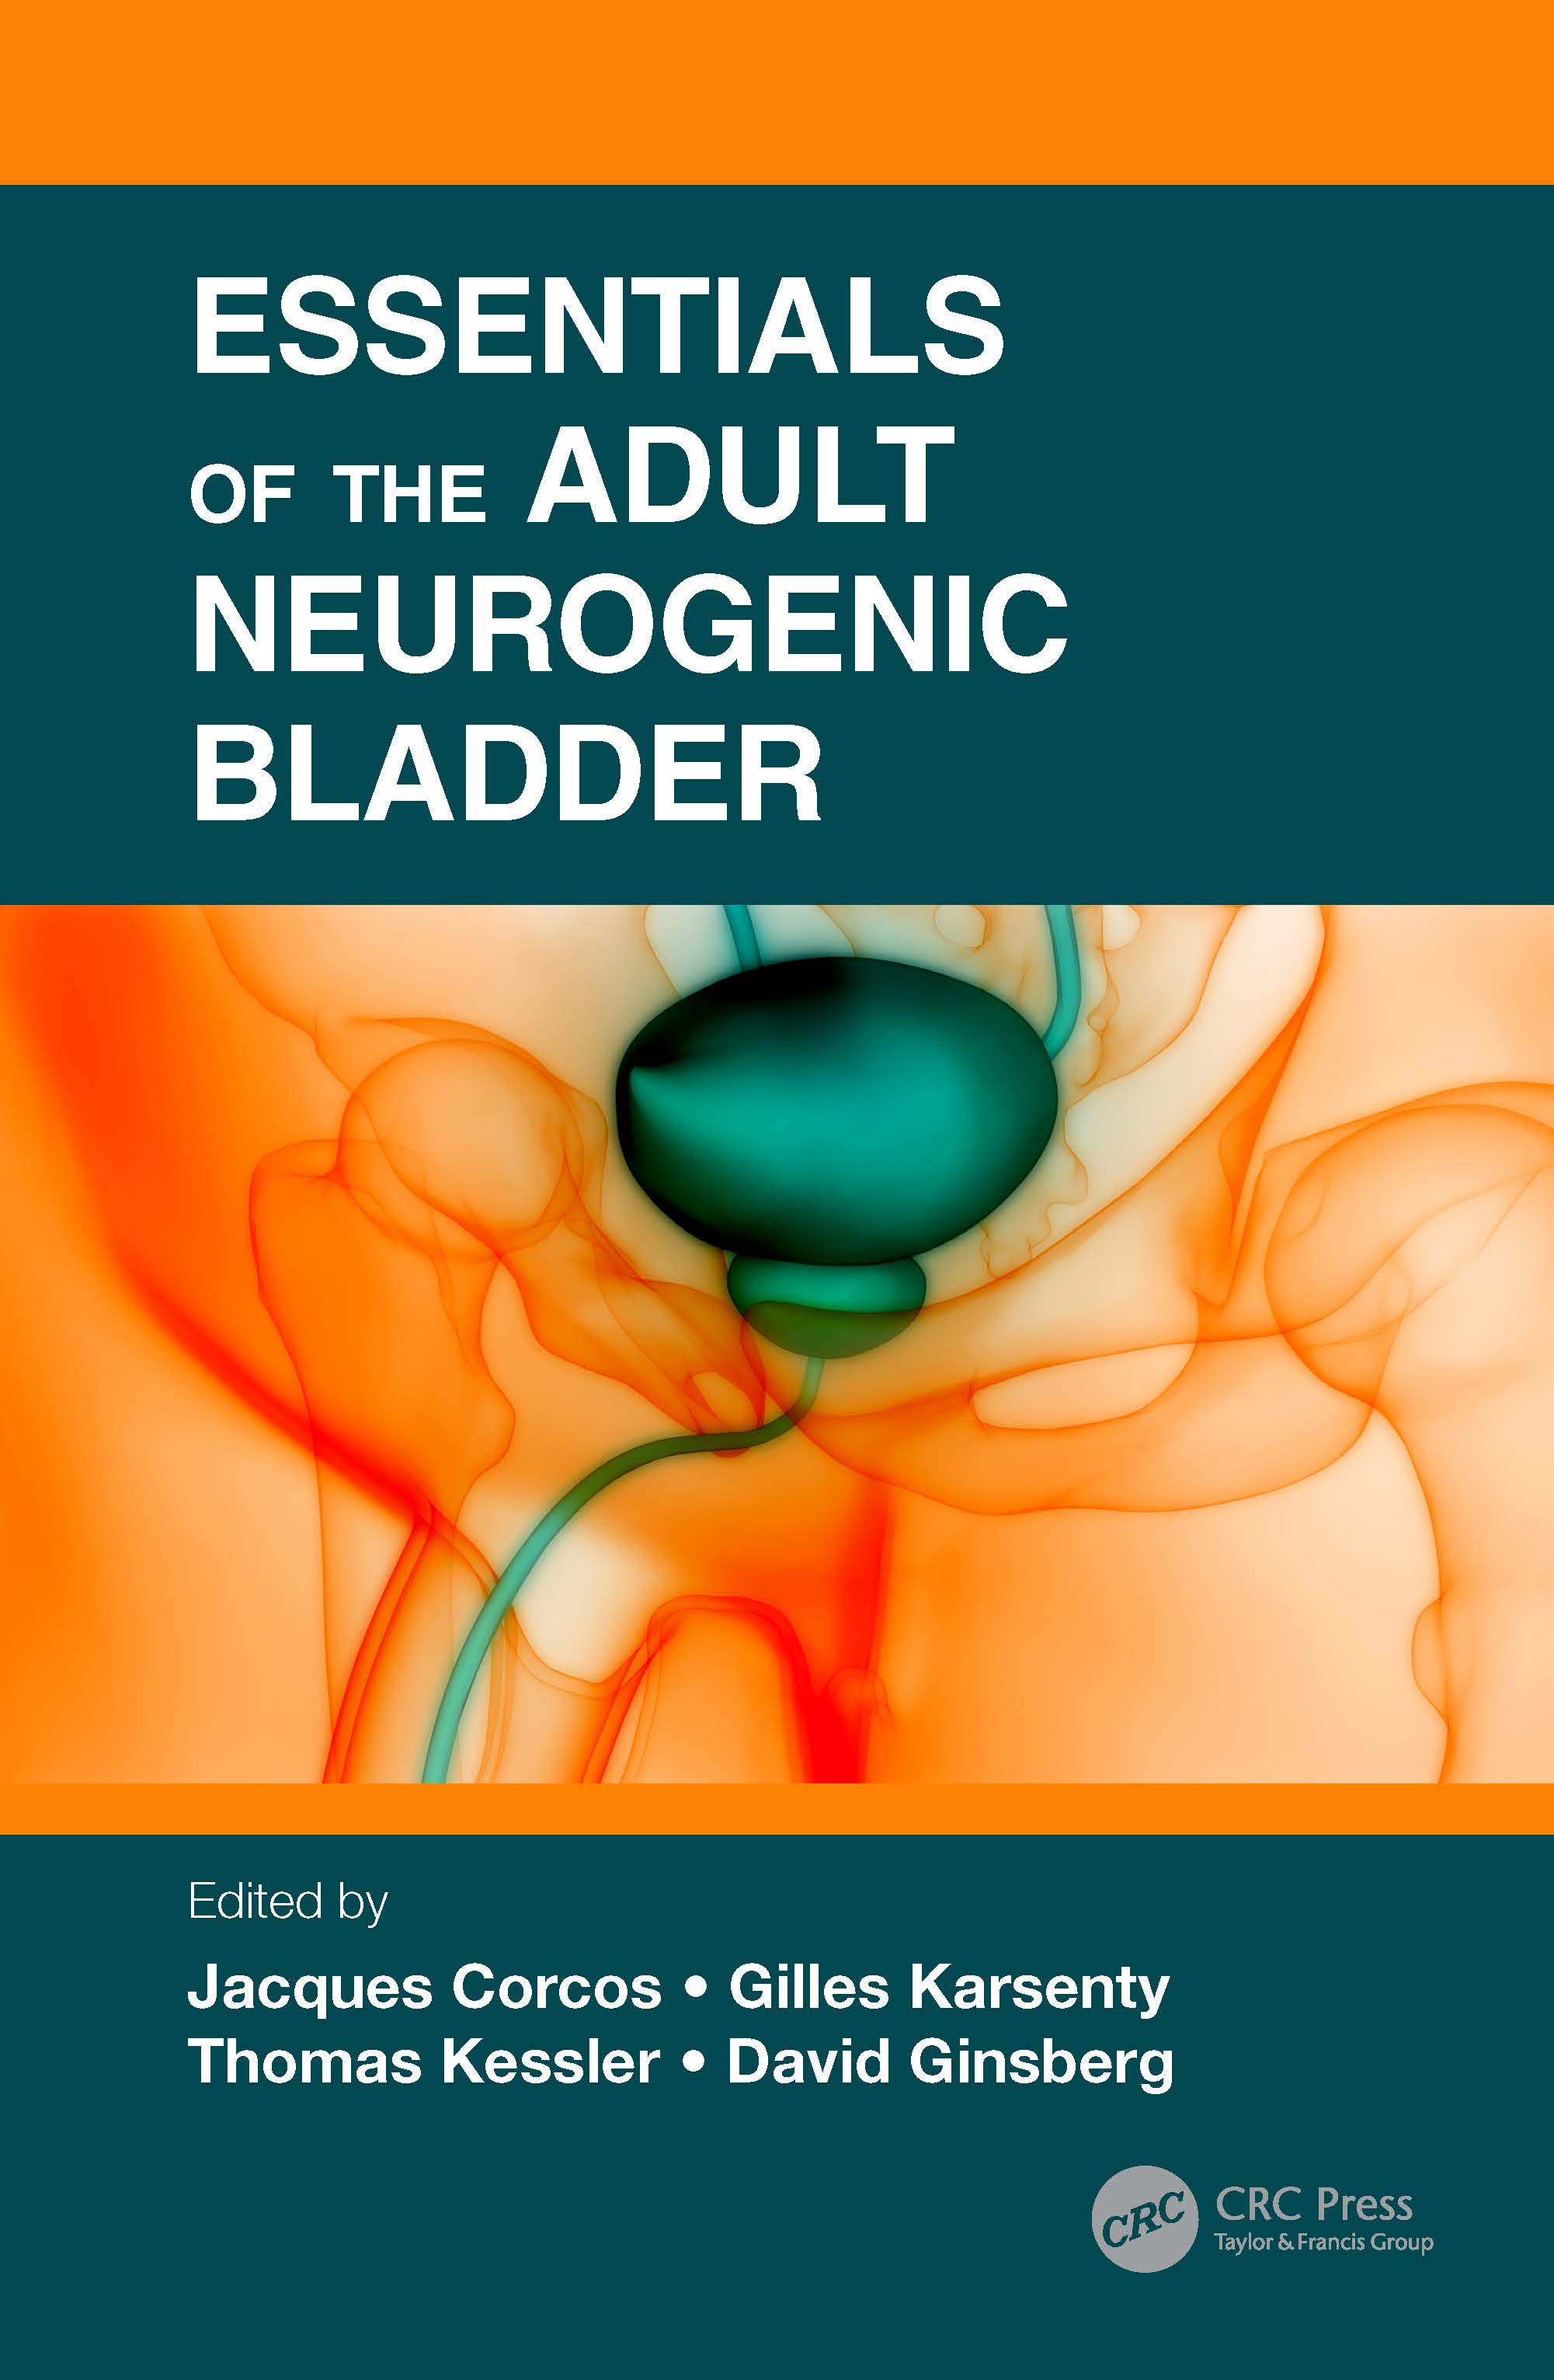 Practical Guide to Diagnosis and Follow-up of Patients with Neurogenic Bladder Dysfunction